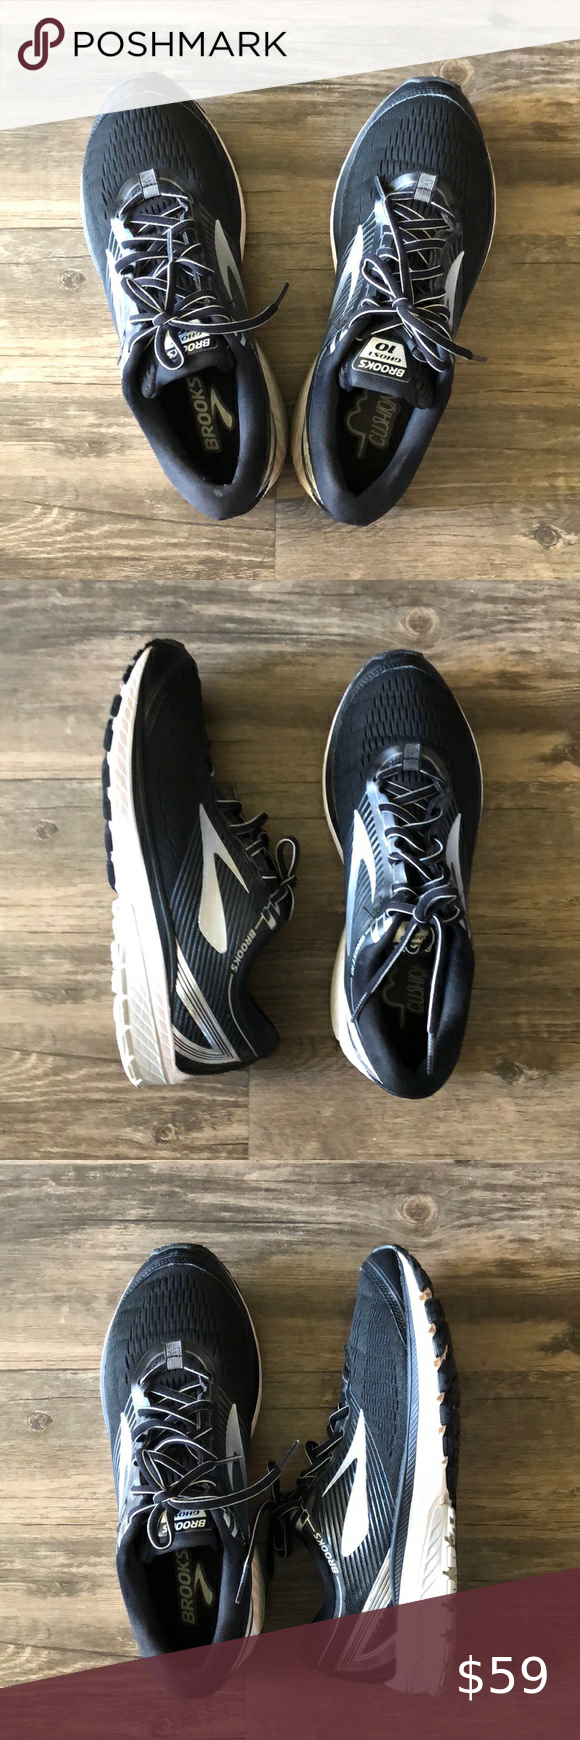 Brooks Ghost 10 Running Shoes size 10.5